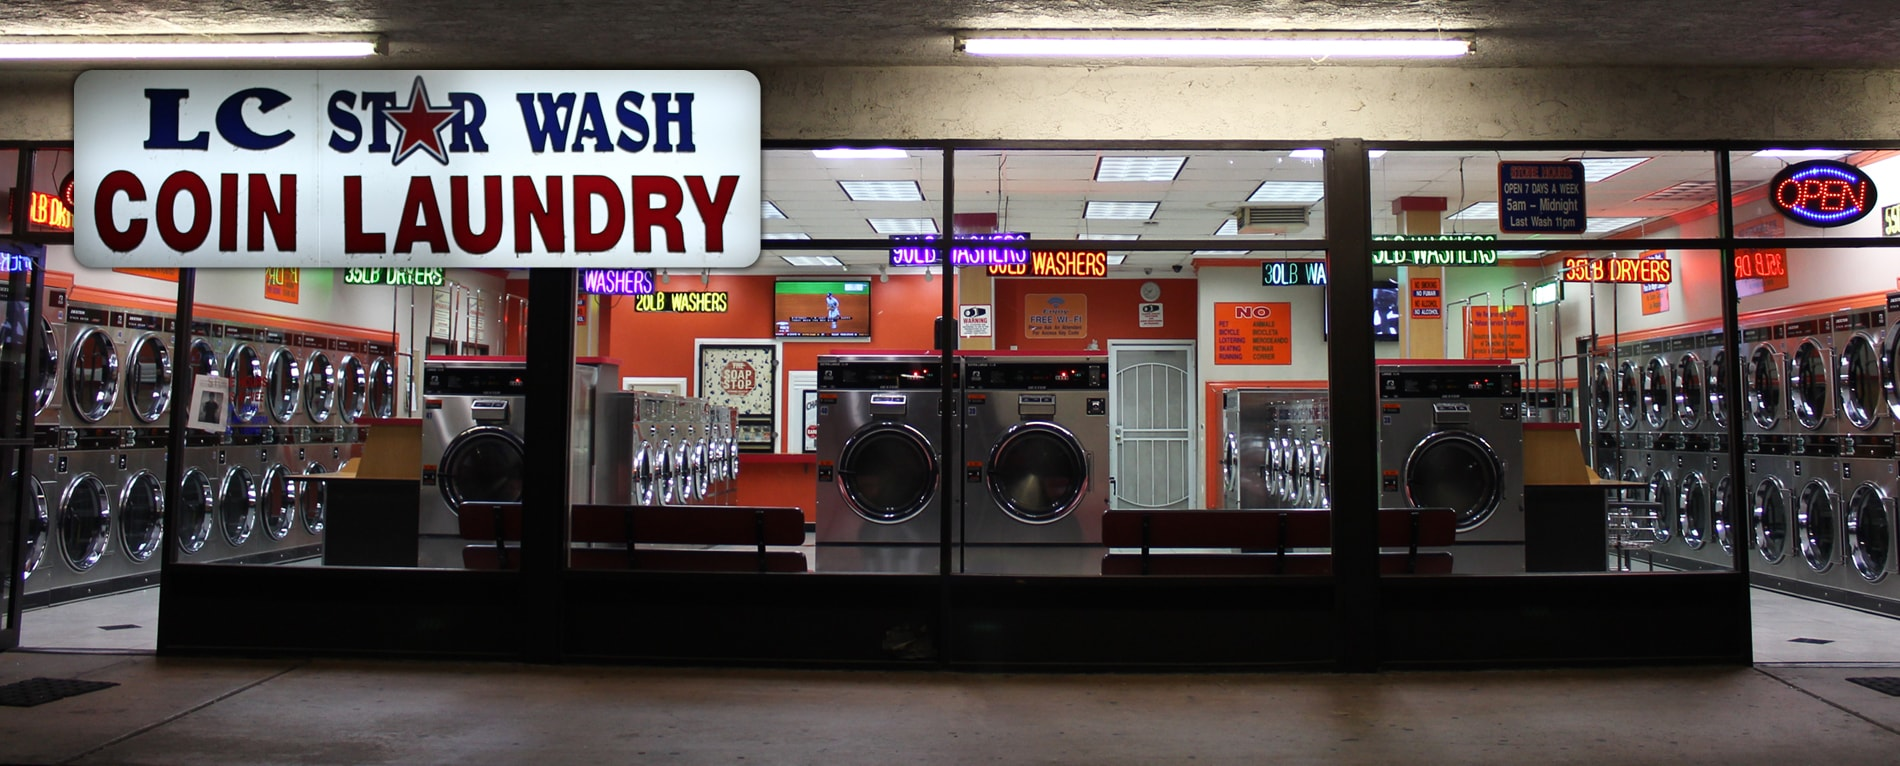 LC Star Wash Coin Laundry: 8009 Greenleaf Ave, Whittier, CA 90602